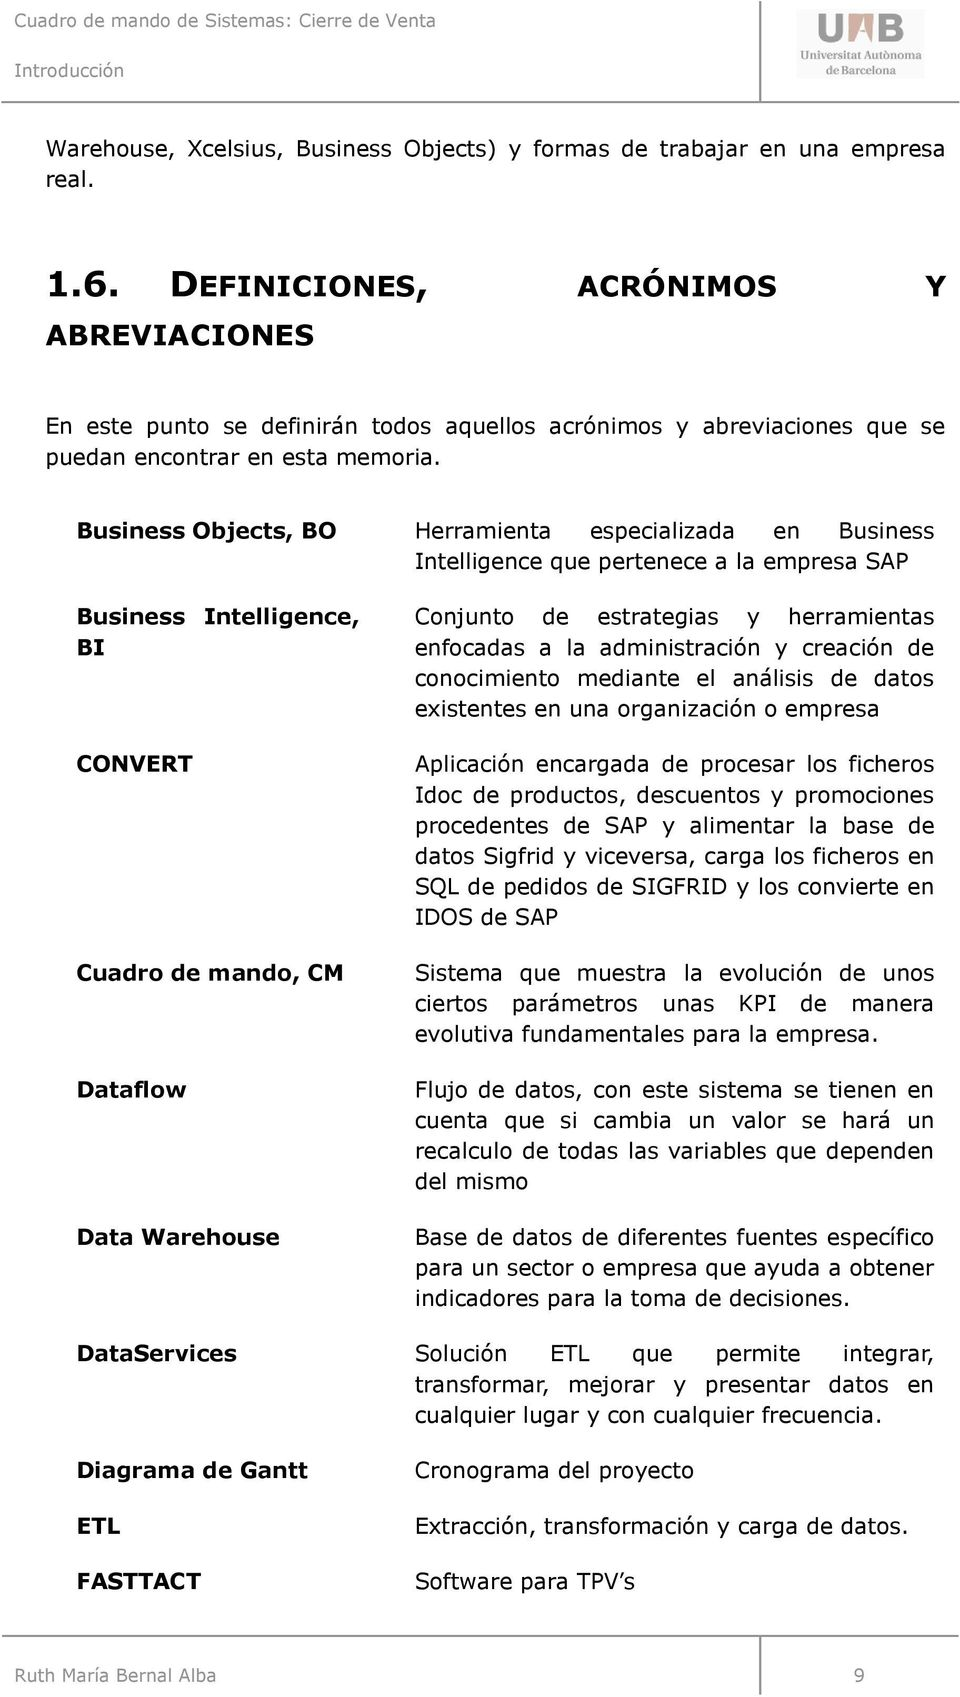 Business Objects, BO Herramienta especializada en Business Intelligence que pertenece a la empresa SAP Business Intelligence, BI CONVERT Cuadro de mando, CM Dataflow Data Warehouse Conjunto de